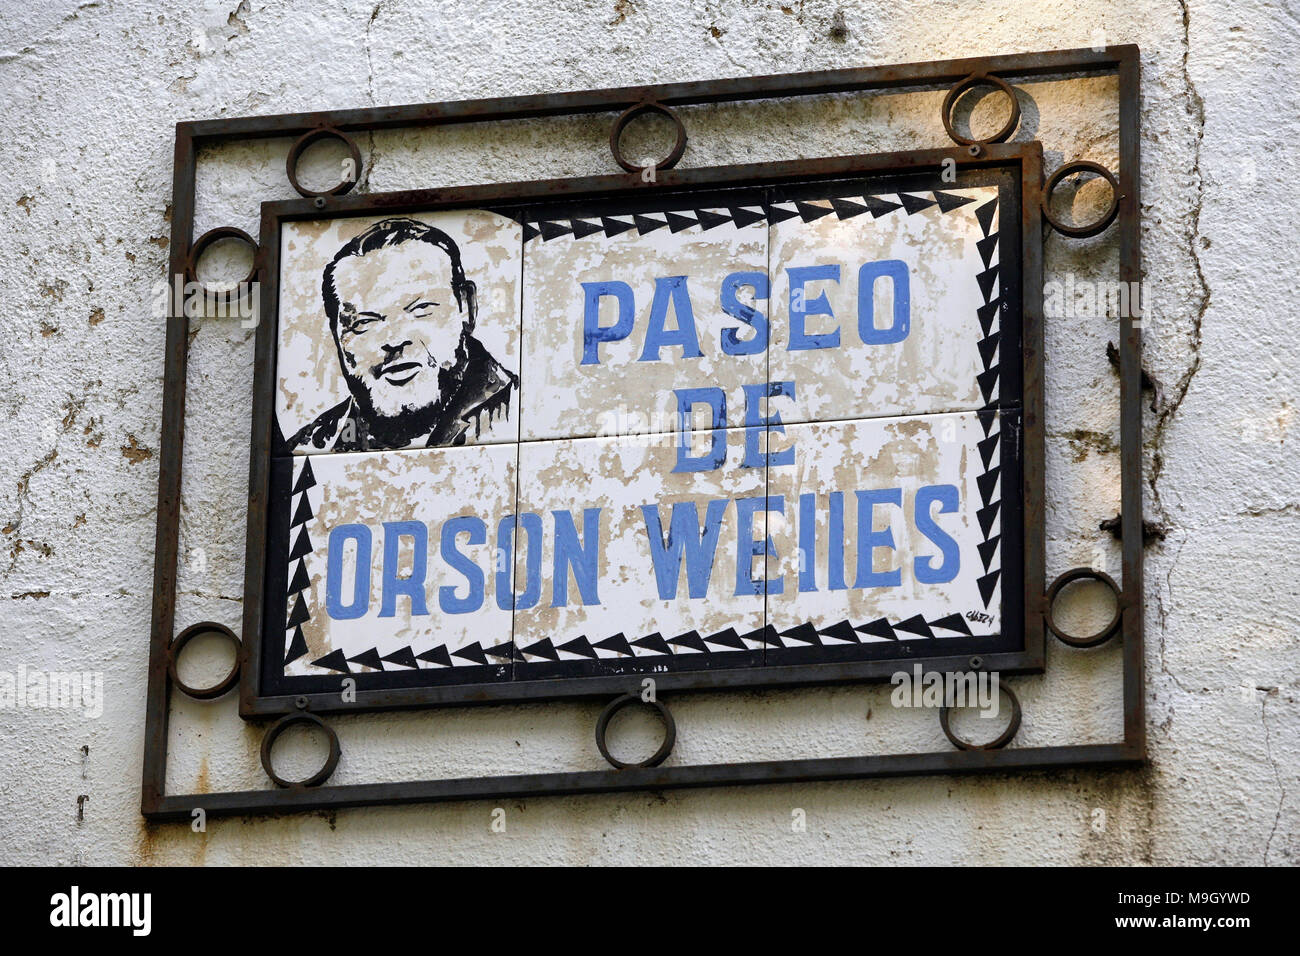 Street sign, Paseo de Orson Welles, Ronda, Andalusia, Spain - Stock Image